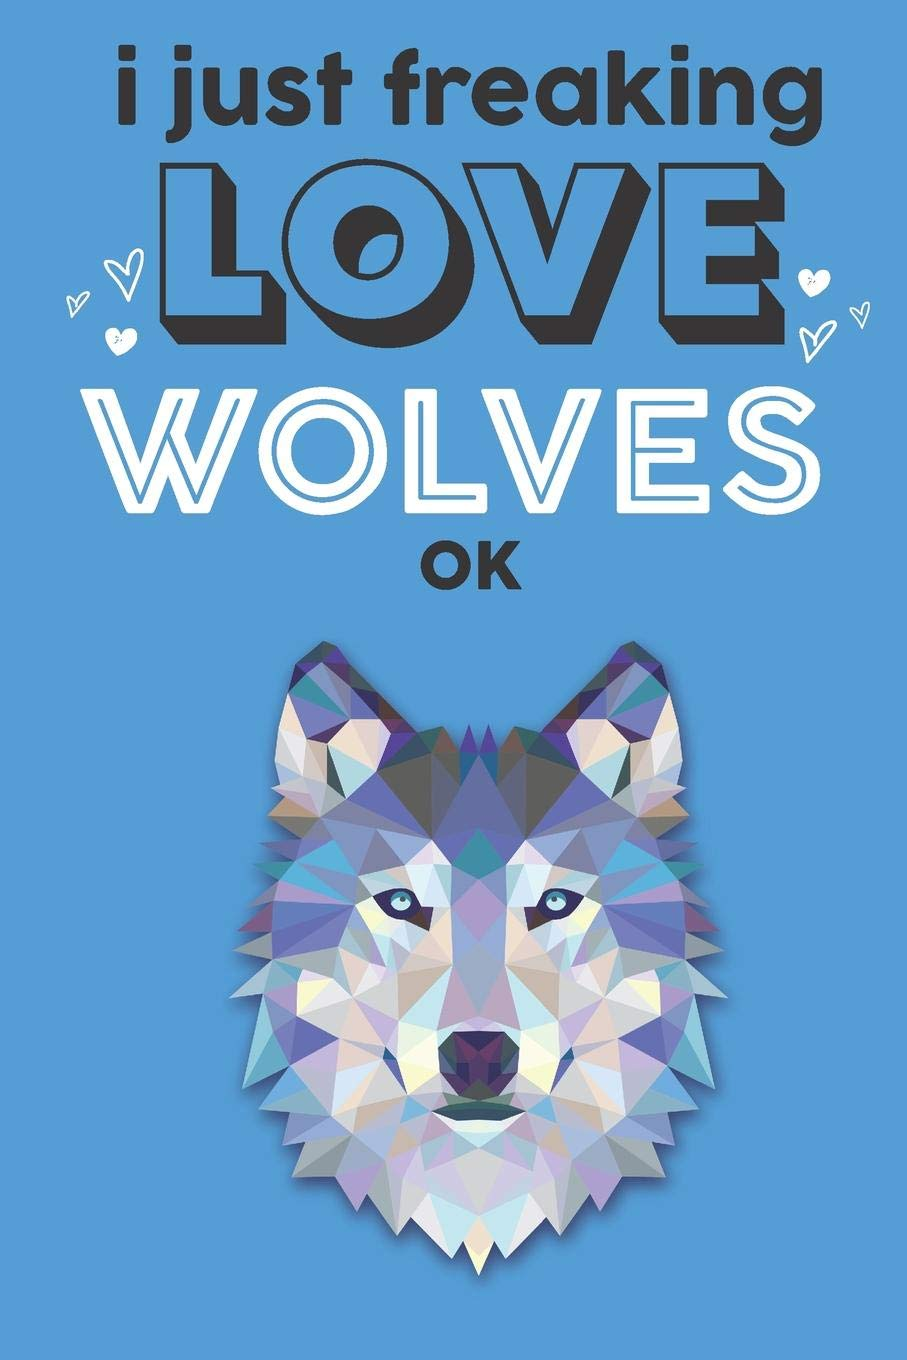 I Just Freaking Love Wolves Ok Cute Wolf Lovers Journal Notebook Diary Birthday Gift 6x9 110 Blank Lined Pages Publishing Bendle 9781079501957 Amazon Com Books